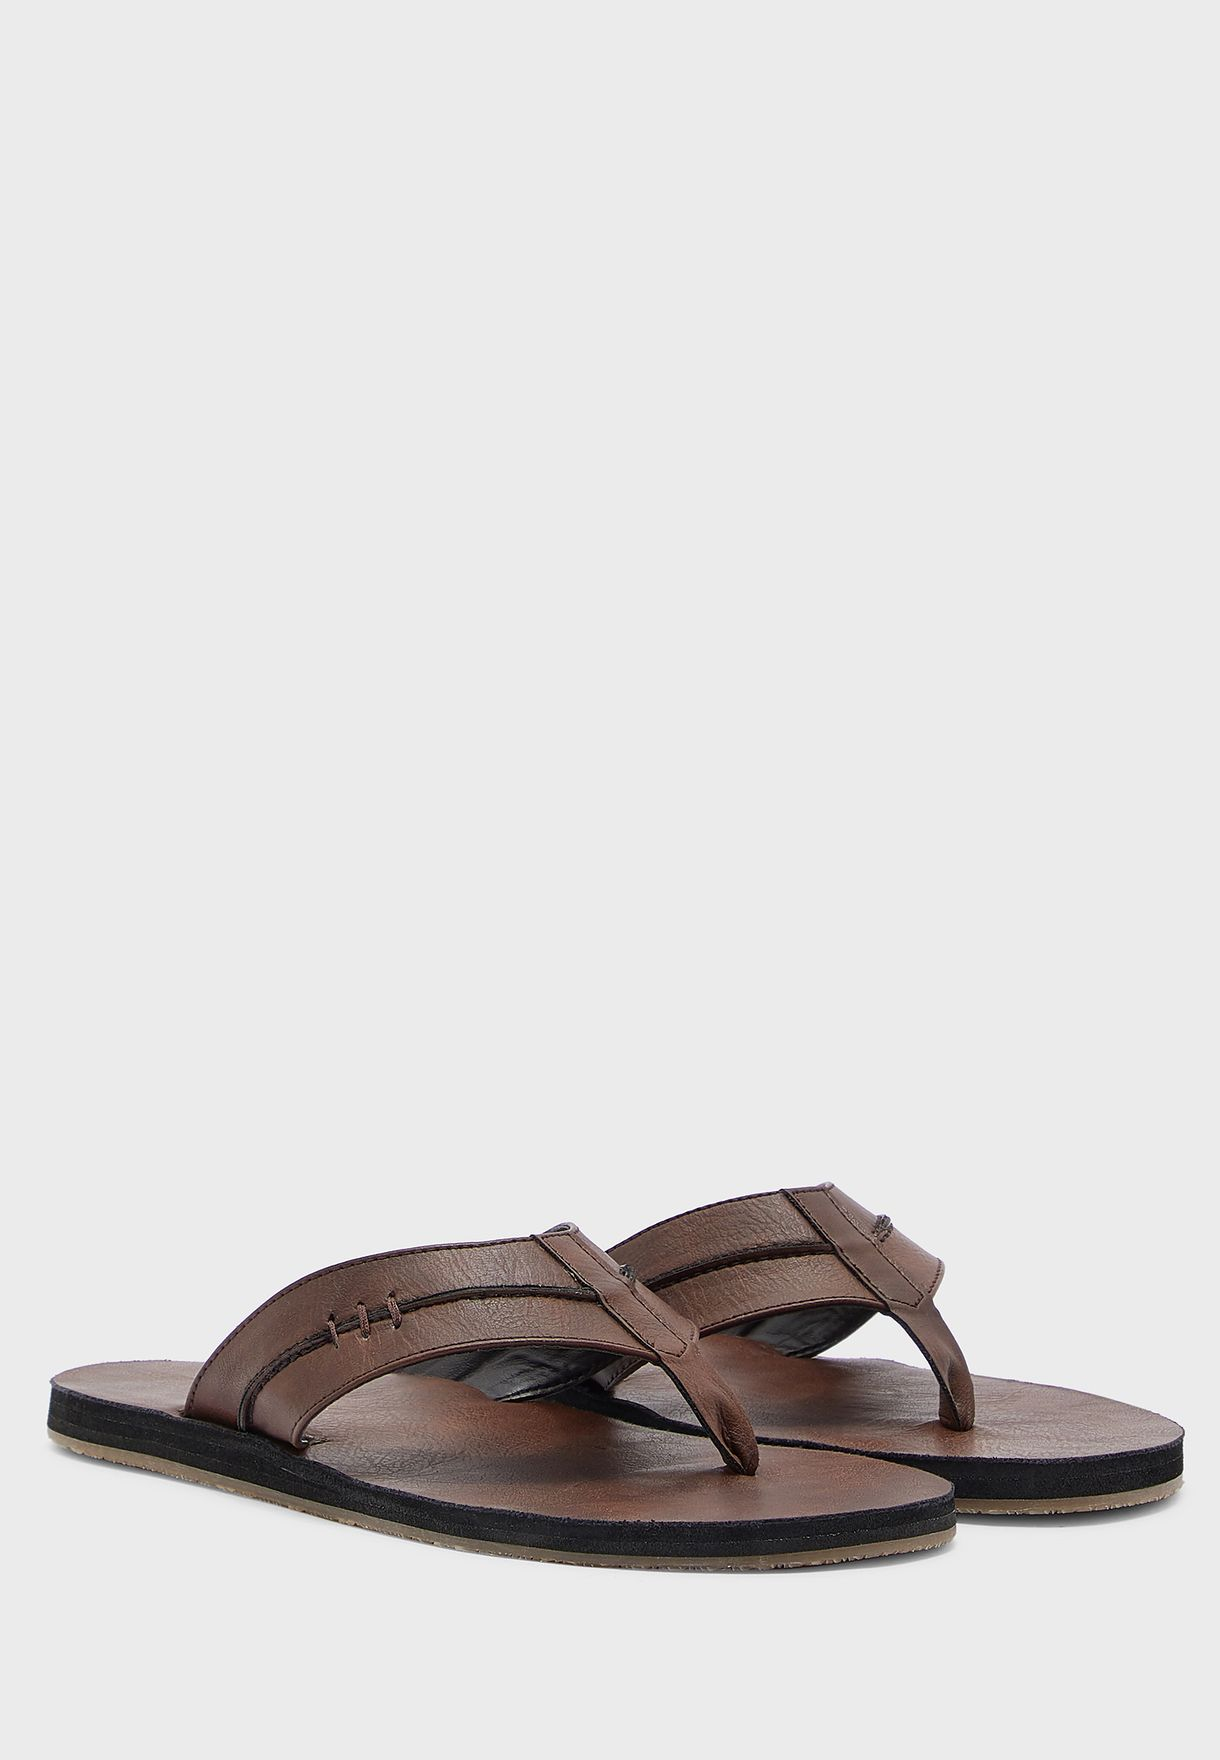 Casual Thong Sandals